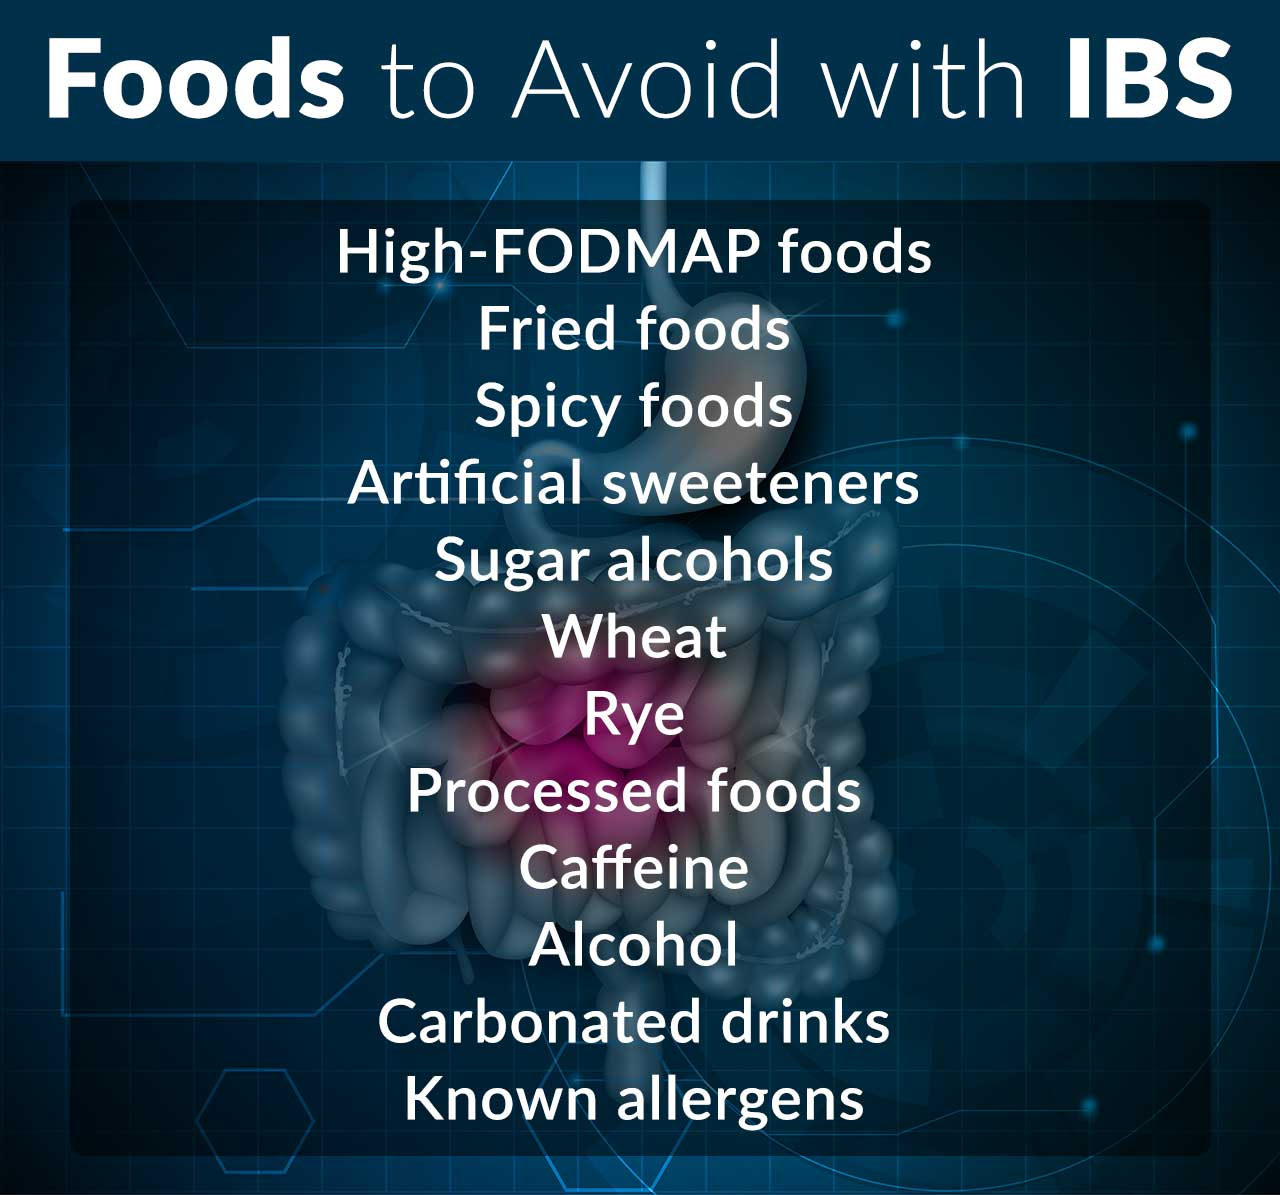 Foods to avoid with IBS